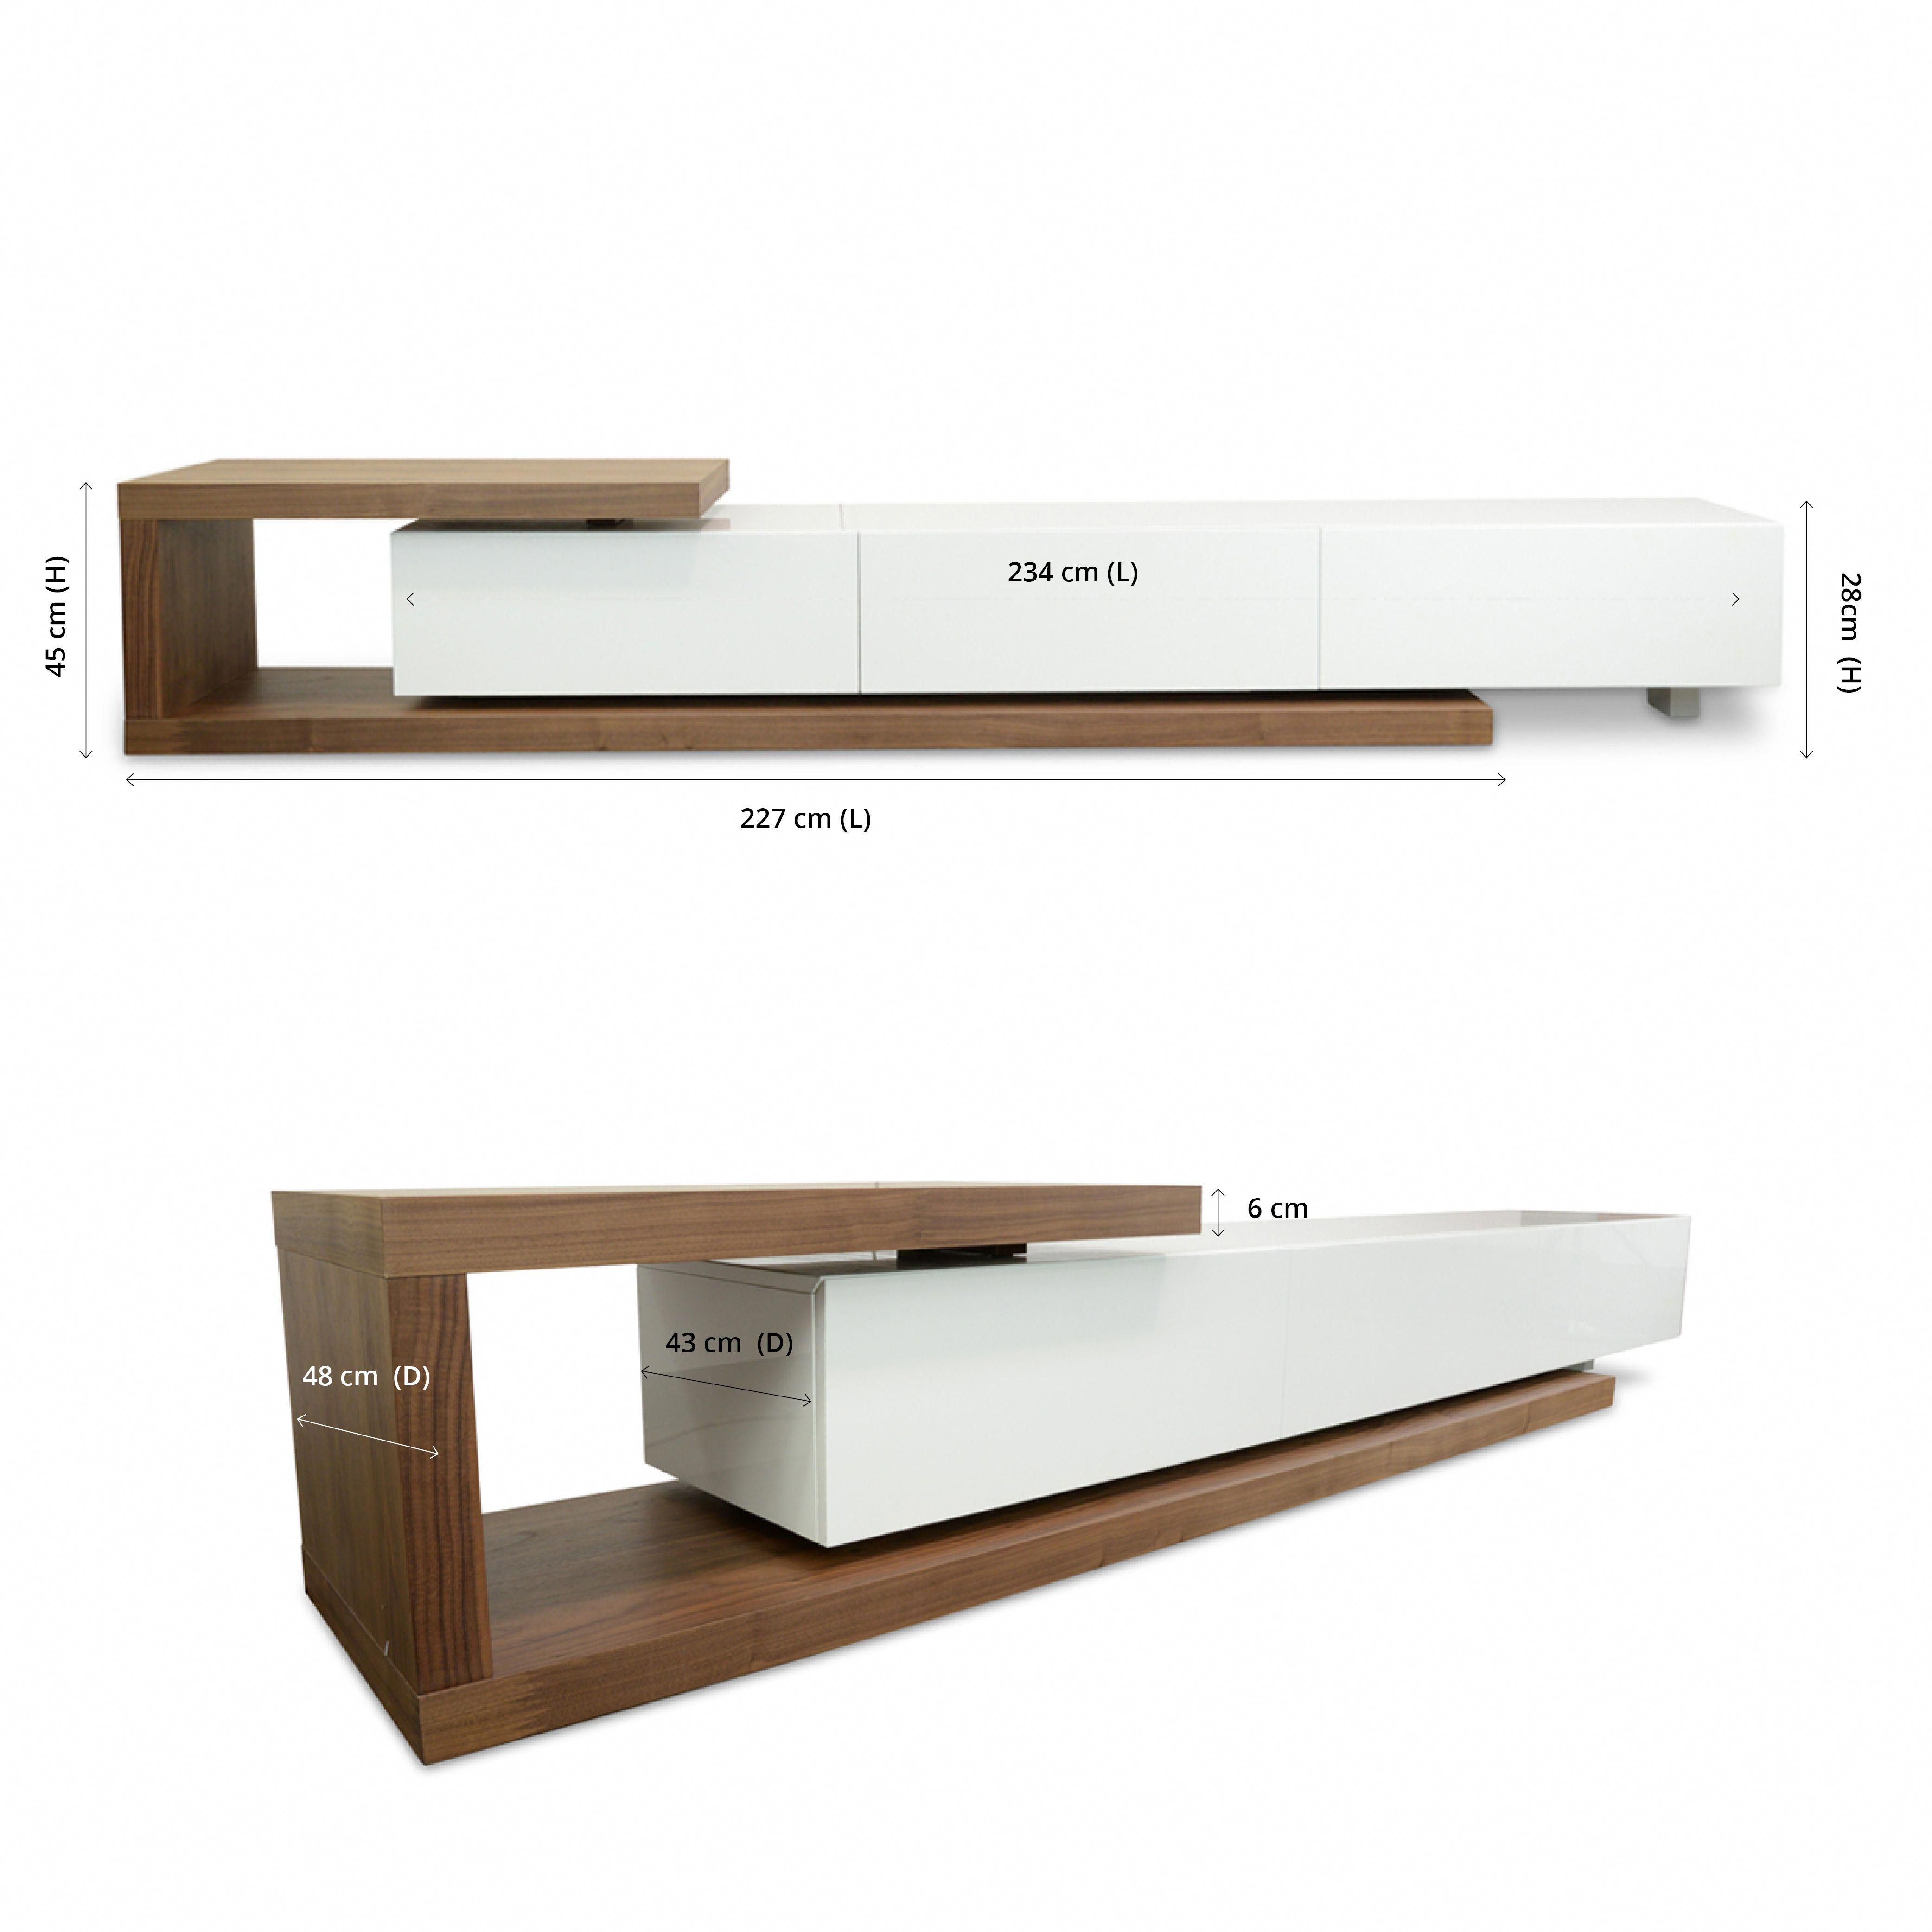 Boasting A Contrasting Strikingly Modern Design And Generous Storage Space Dwell Entertainment Tv Unit Tv Entertainment Units Modern Tv Units Tv Unit Design